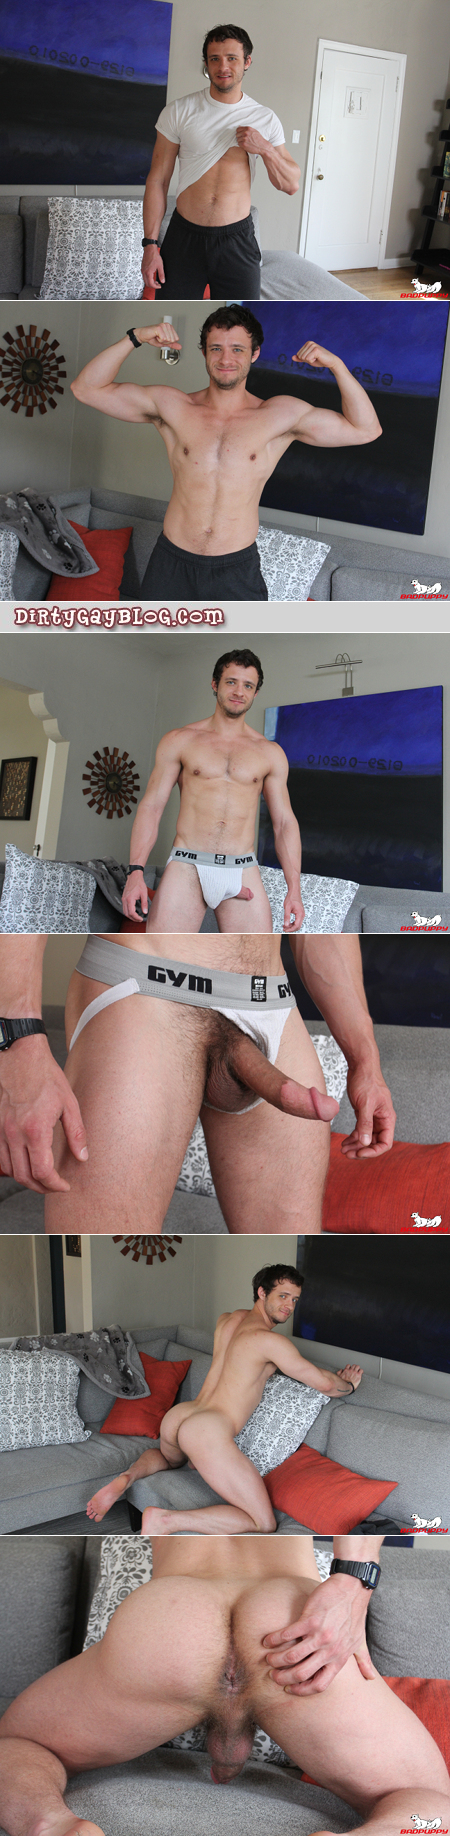 Gay muscle jock shows his hairy dick and asshole.